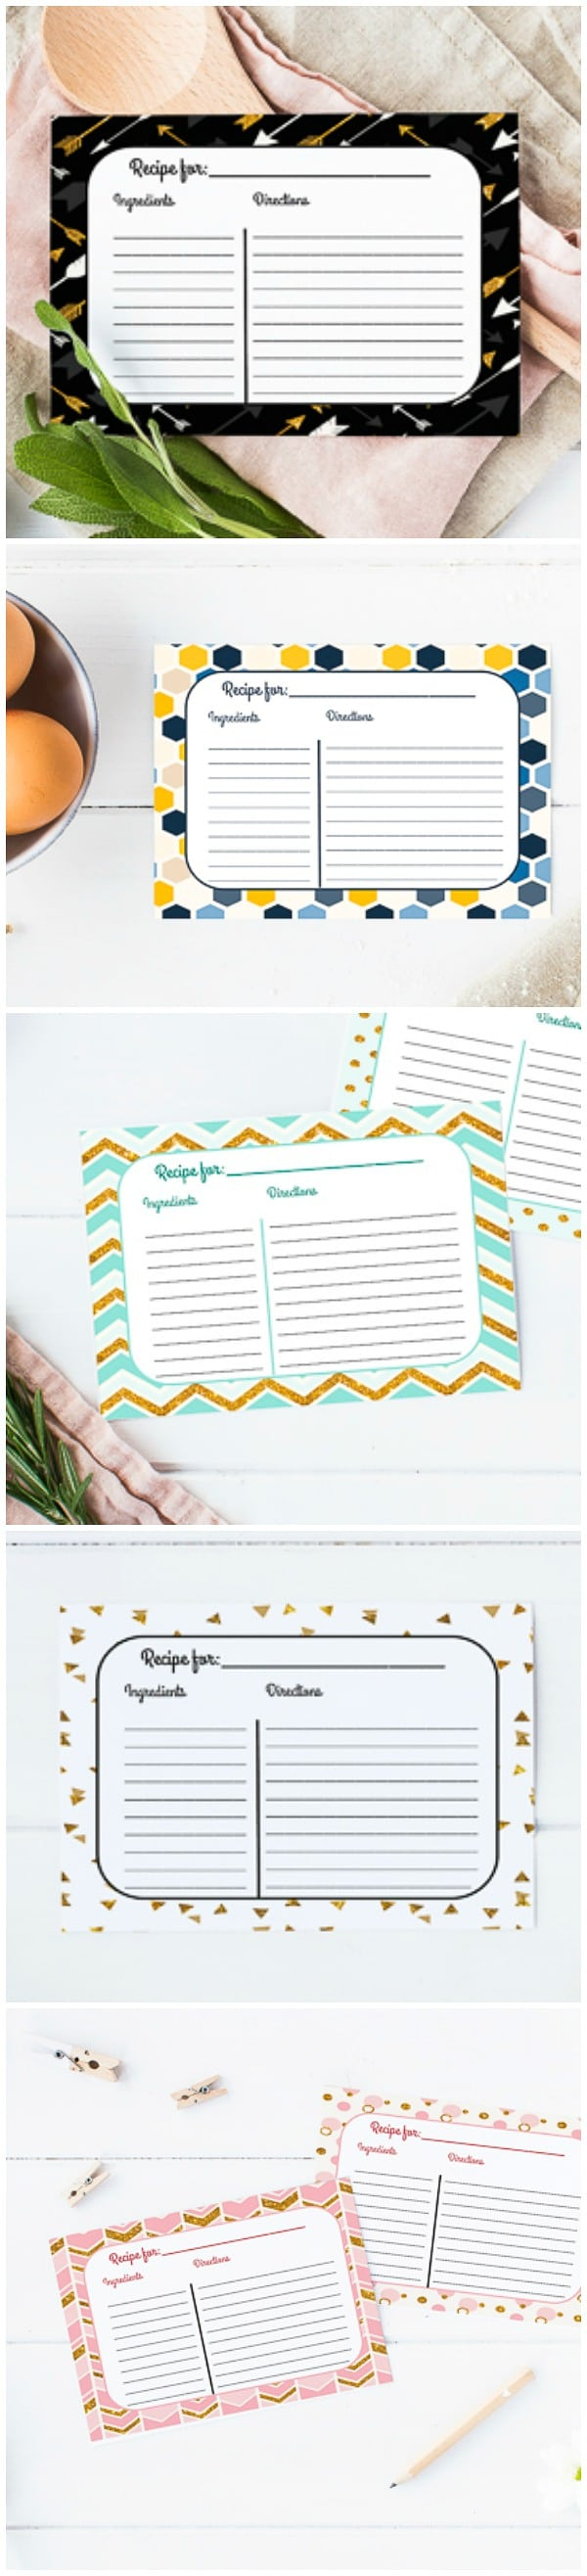 Free Printable Recipe Cards - Keep all of your favorite recipes safe and organized with these Free Printable Recipe Cards, in 5 different colors and designs.